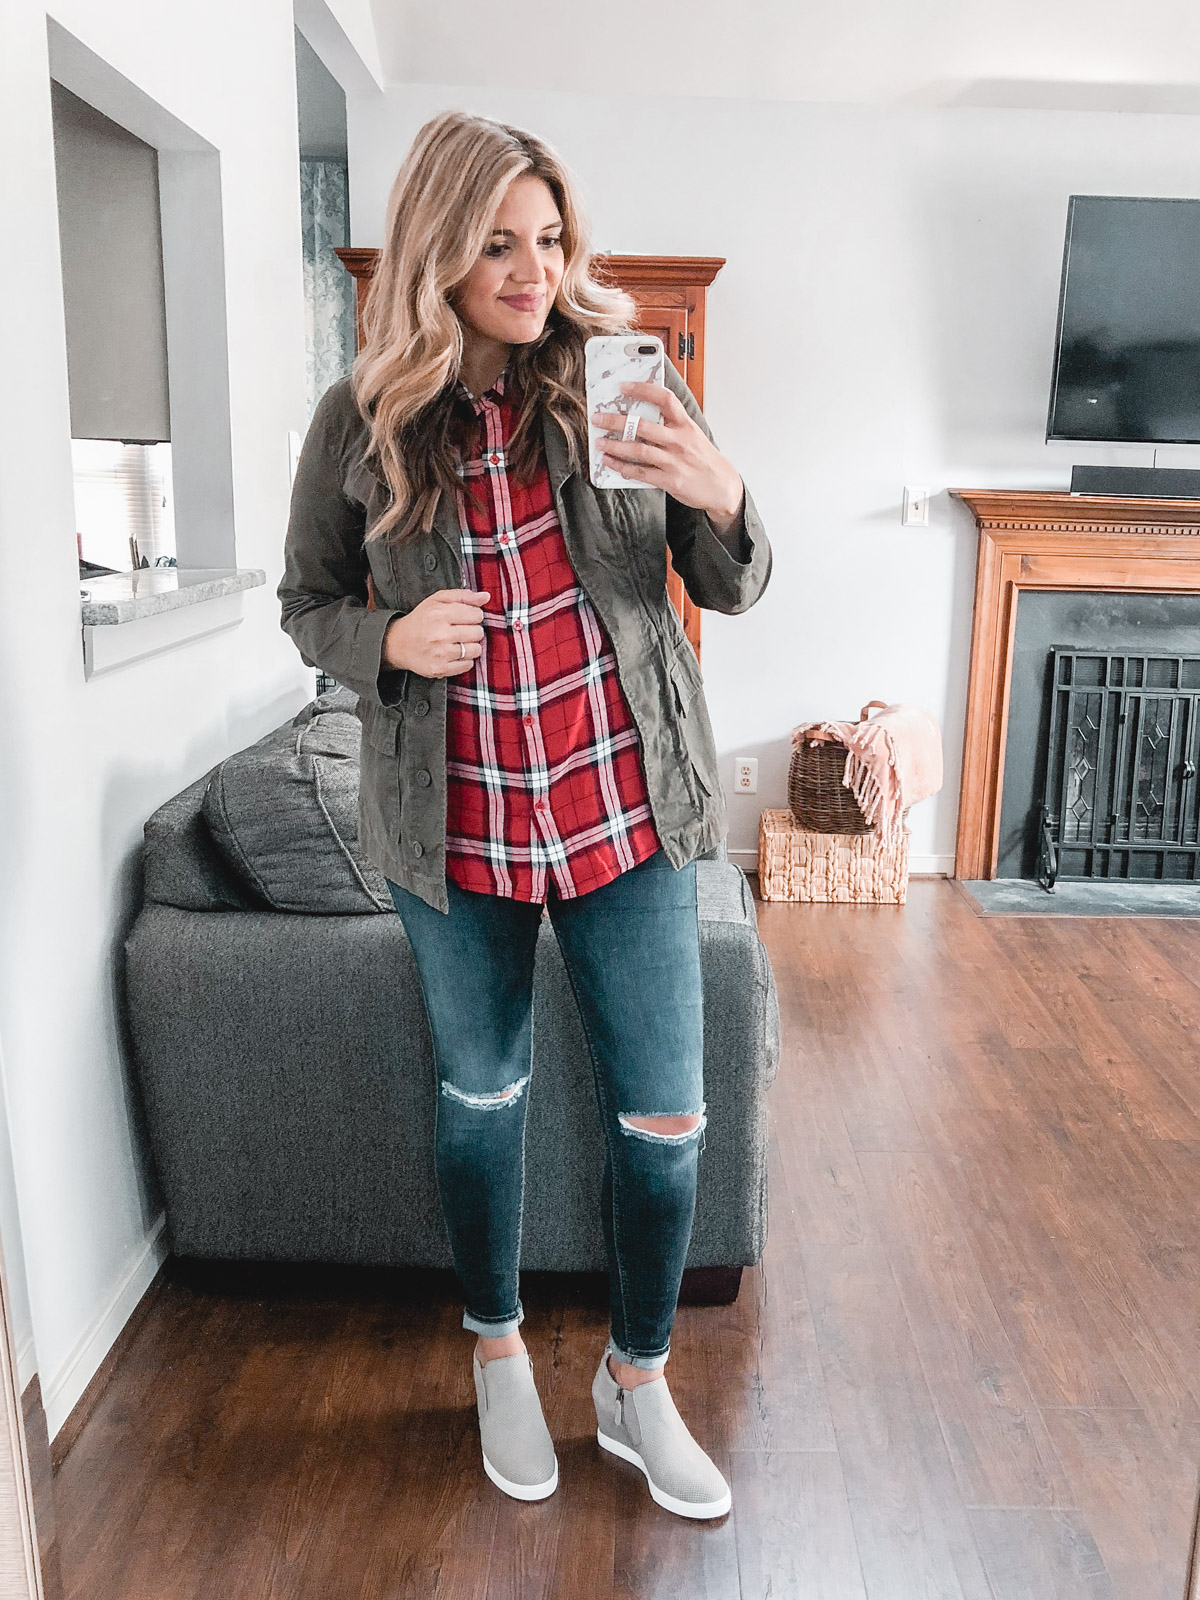 different ways to wear a plaid top - Need plaid top outfit ideas? I'm sharing one $31 plaid top styled 15 different ways on bylaurenm.com!